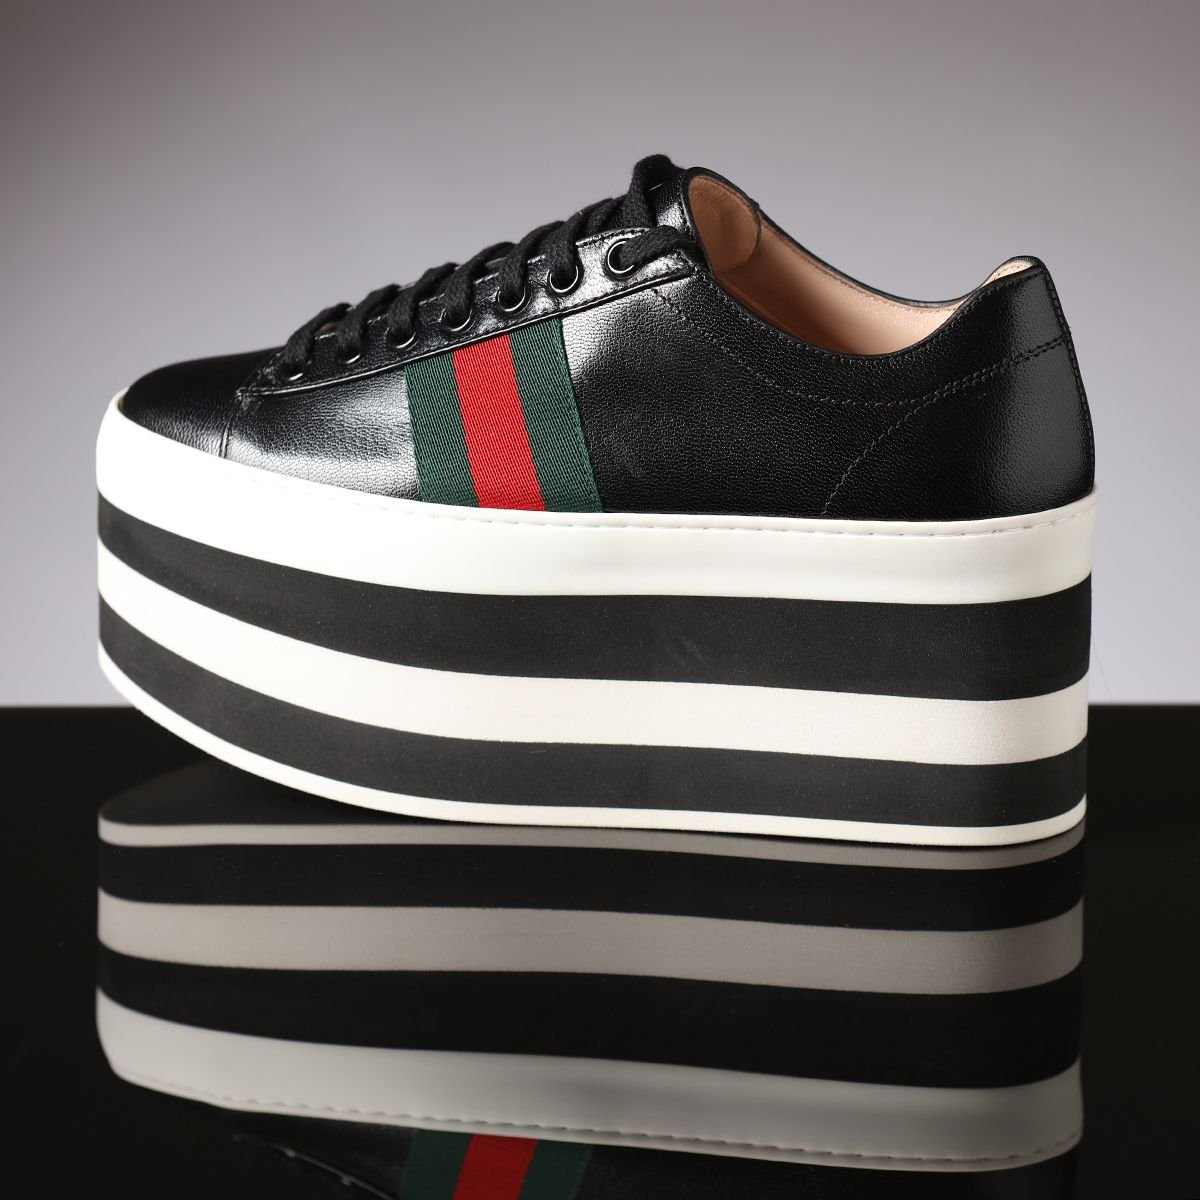 100% authentic 65537 de979 Heads above the rest in Gucci platform sneakers